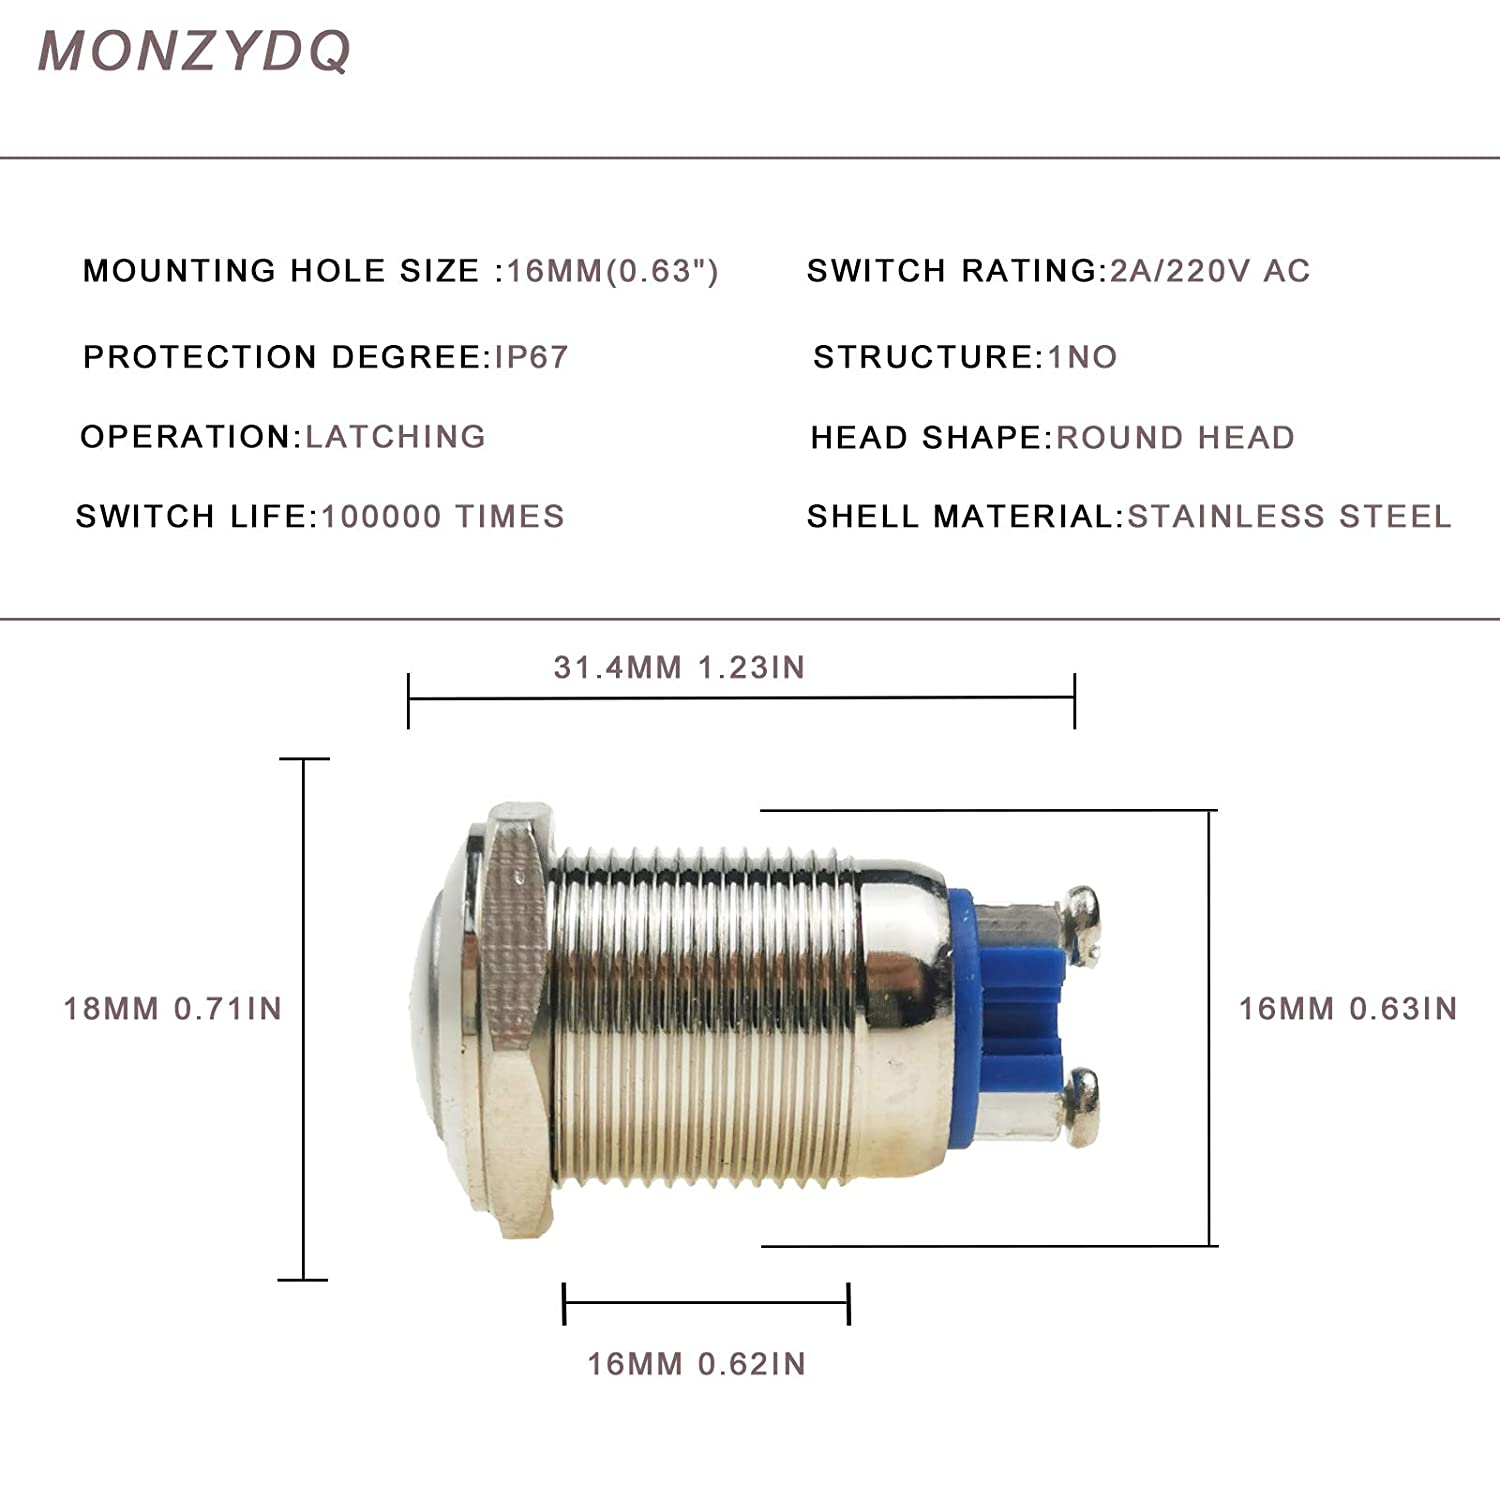 High Round Head MONZYDQ 5Pcs 16mm5//8 Momentary Push Button Switch,Waterproof Metal Pushbutton 220V AC 2A Self-Reset for Car Modificine.